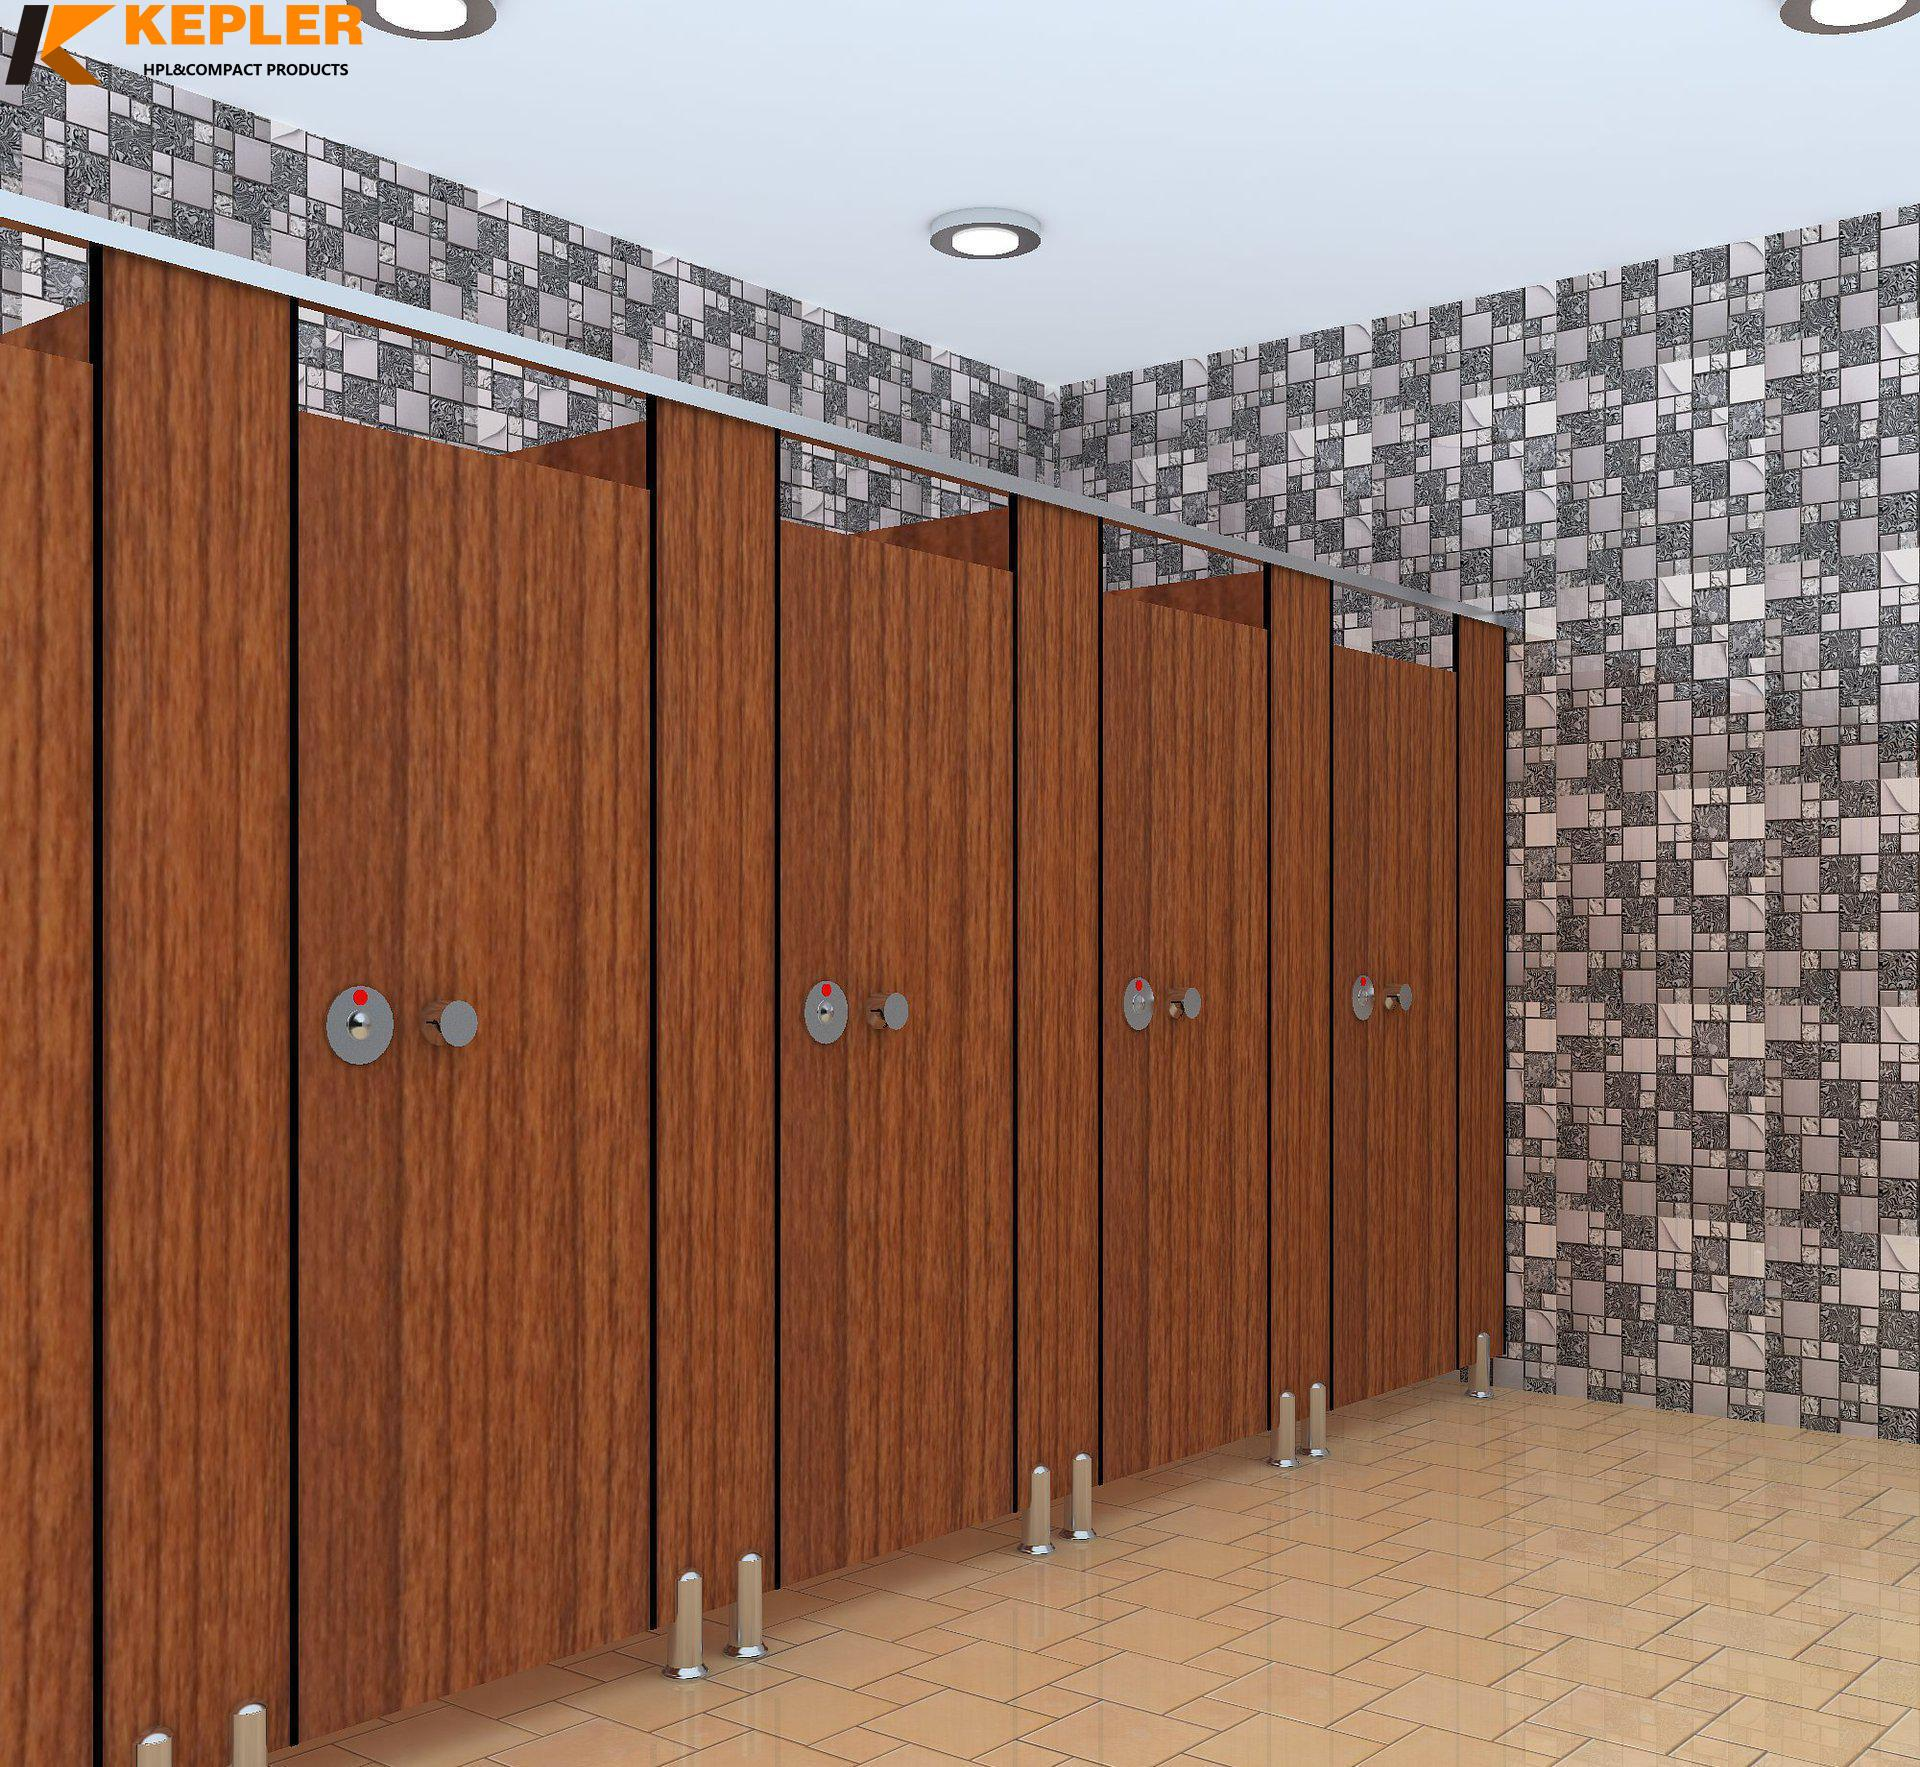 Kepler public used phenolic compact laminate hpl toilet partition and urinal divider Kepler public used phenolic compact laminate hpl toilet partition and urinal divider